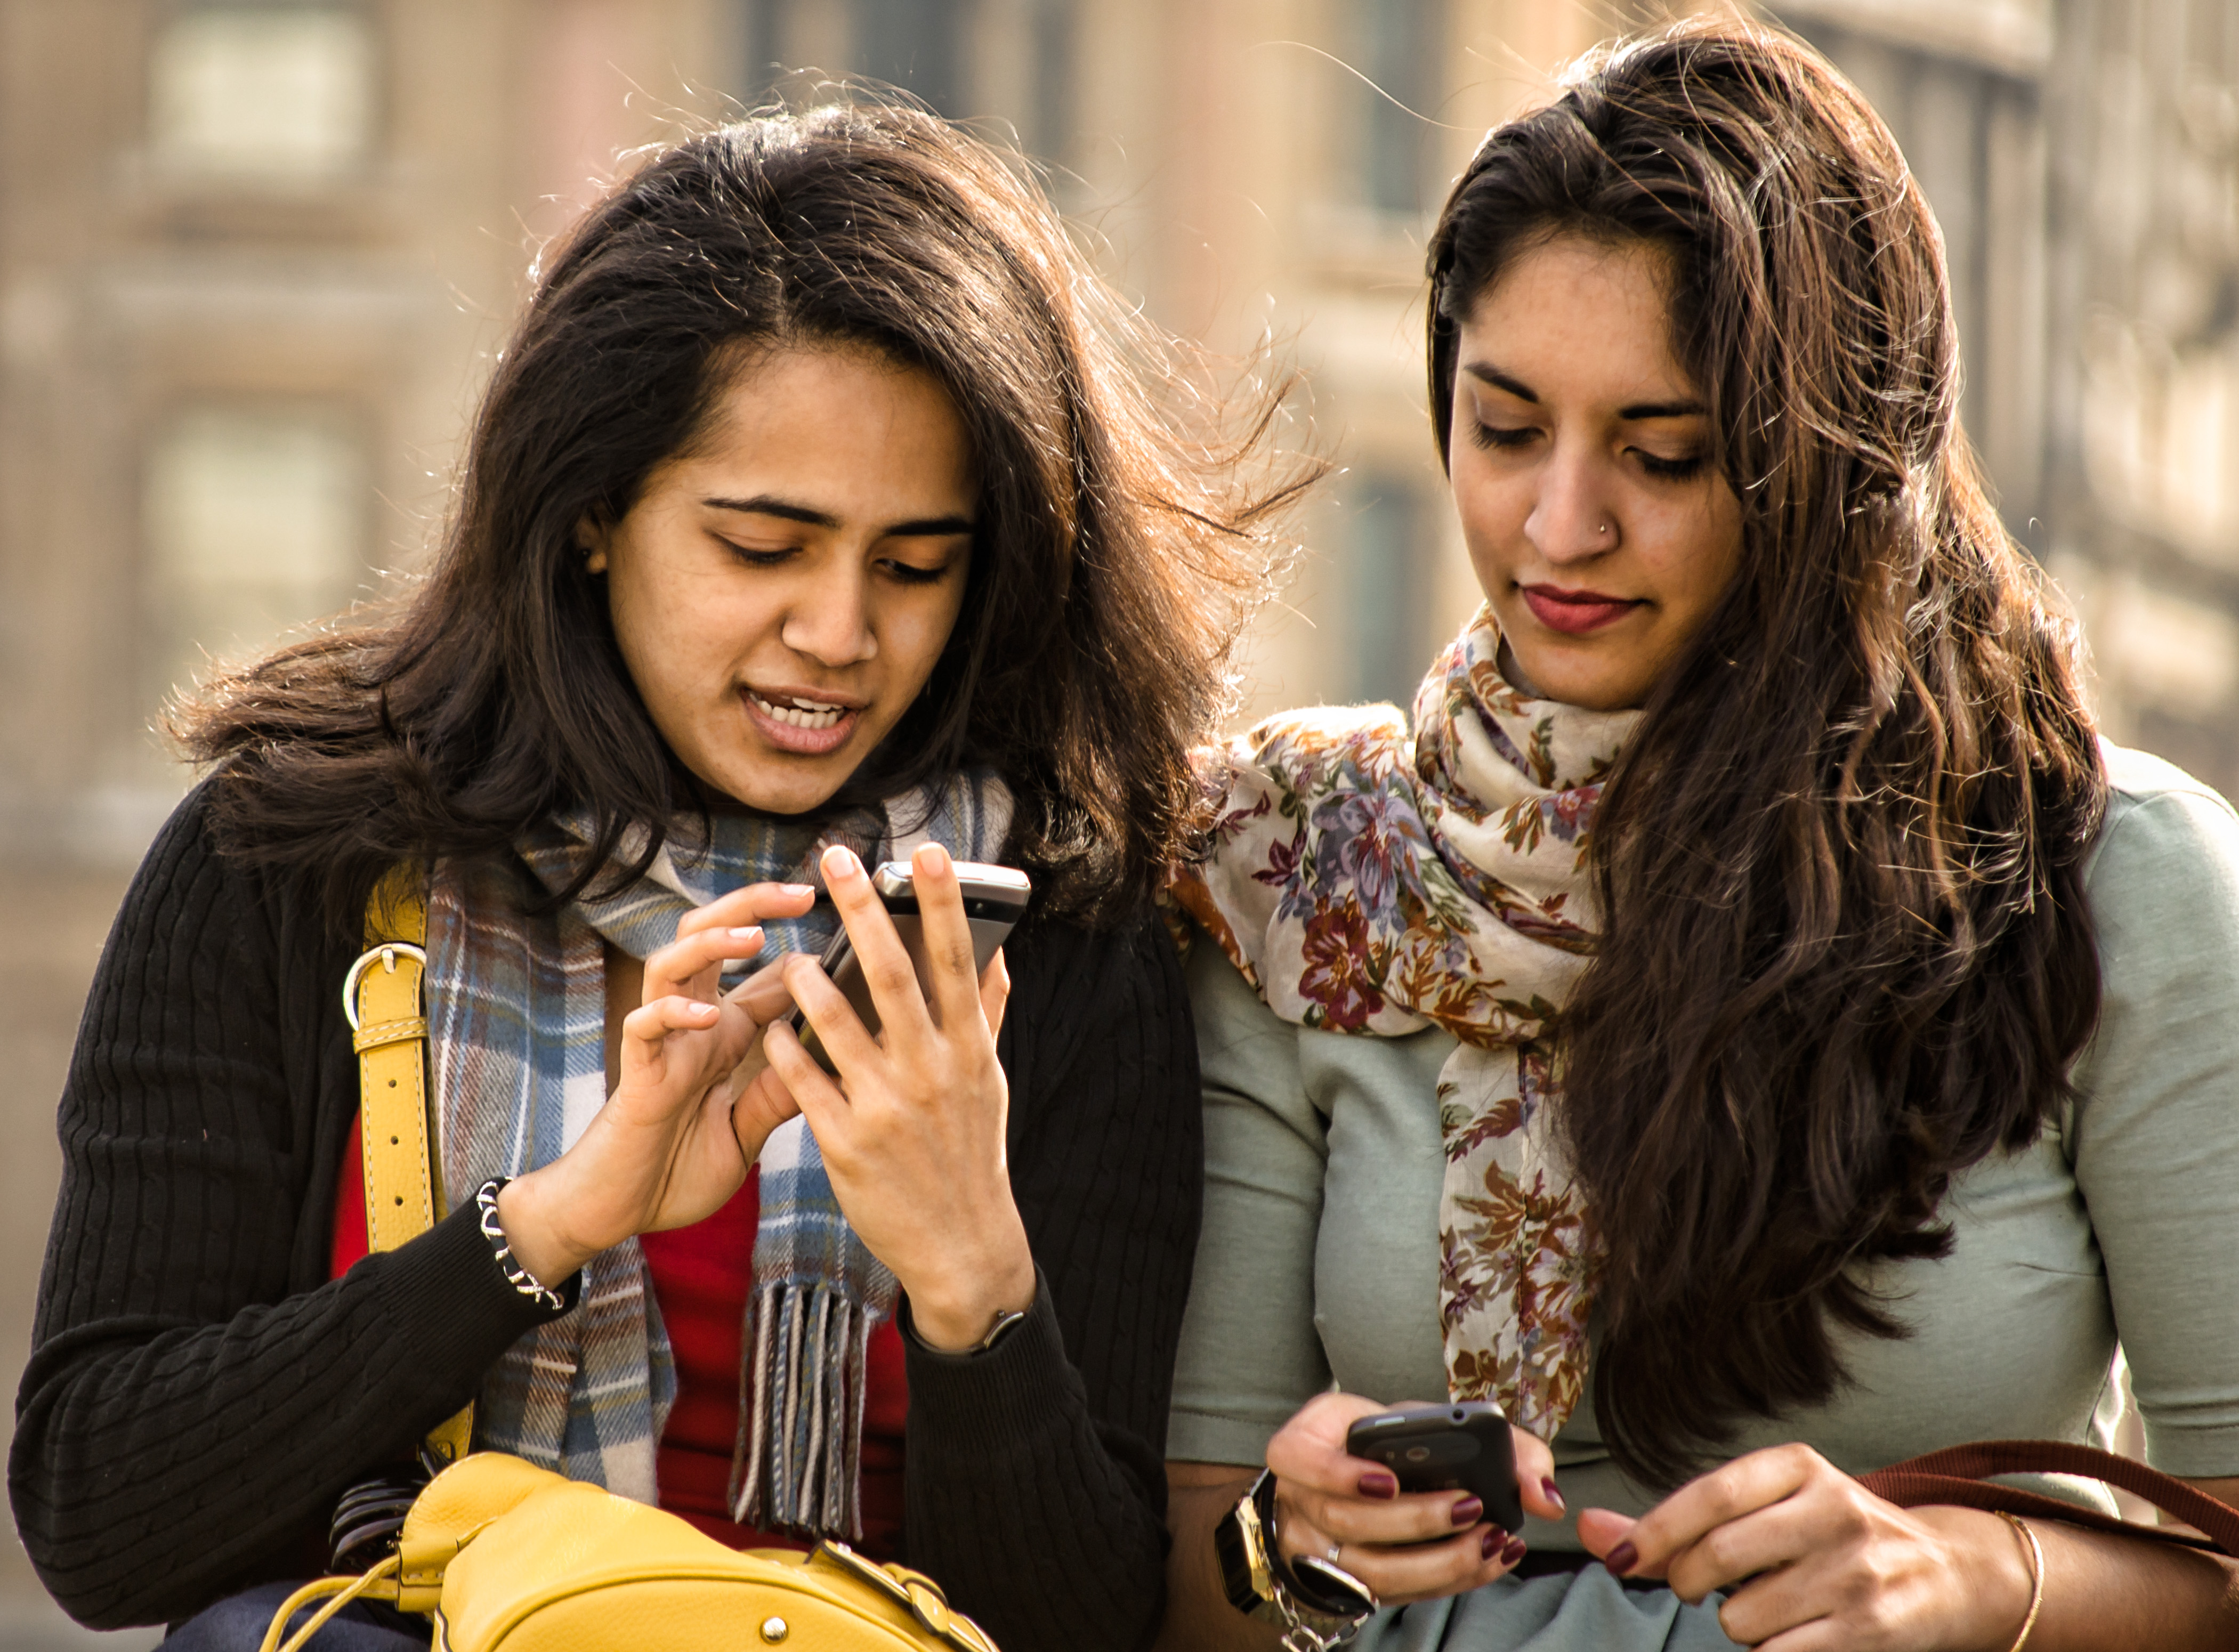 Now, instead of texting each other, you can text other people. Photo by Gary Knight.